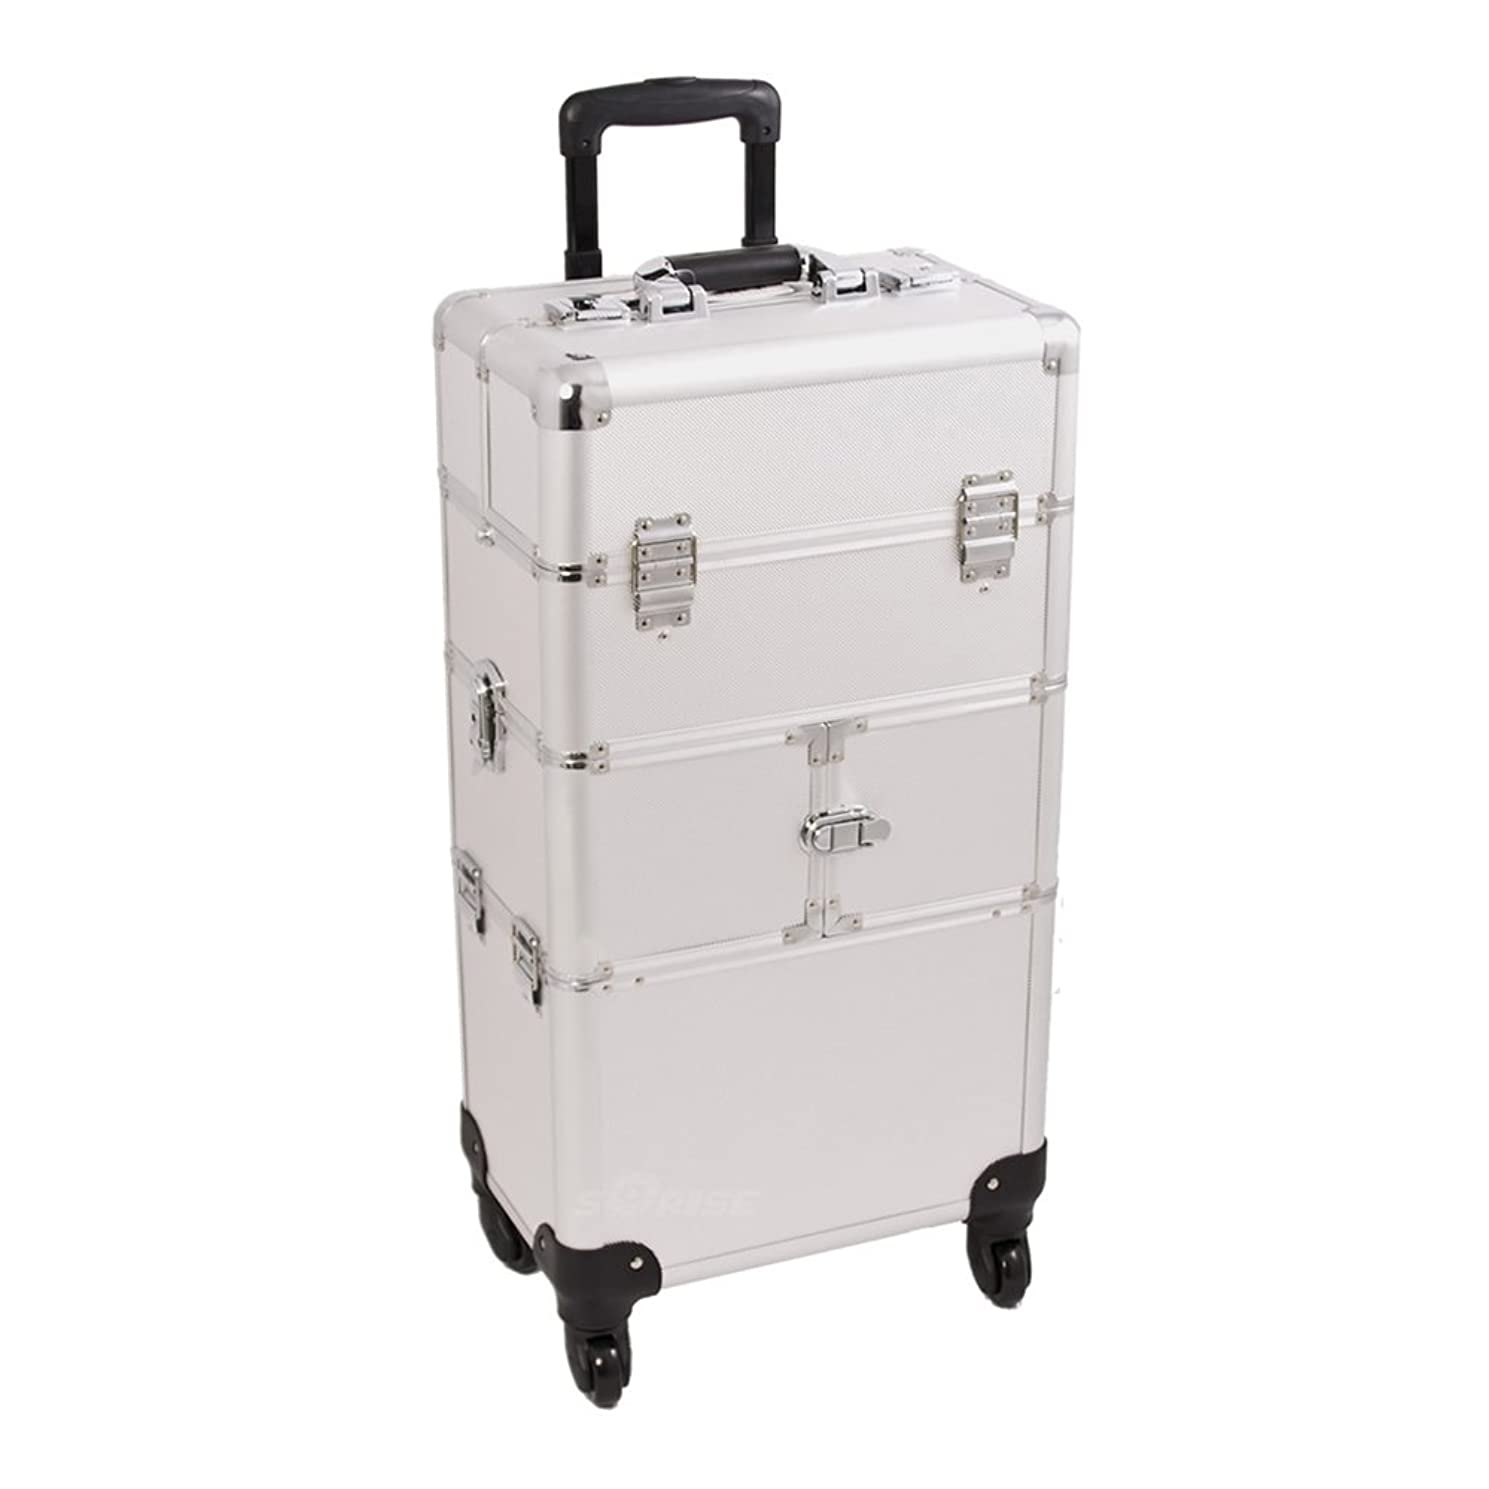 Craft Accents I3264 Dot Trolley Craft/Quilting Storage Case, Silver